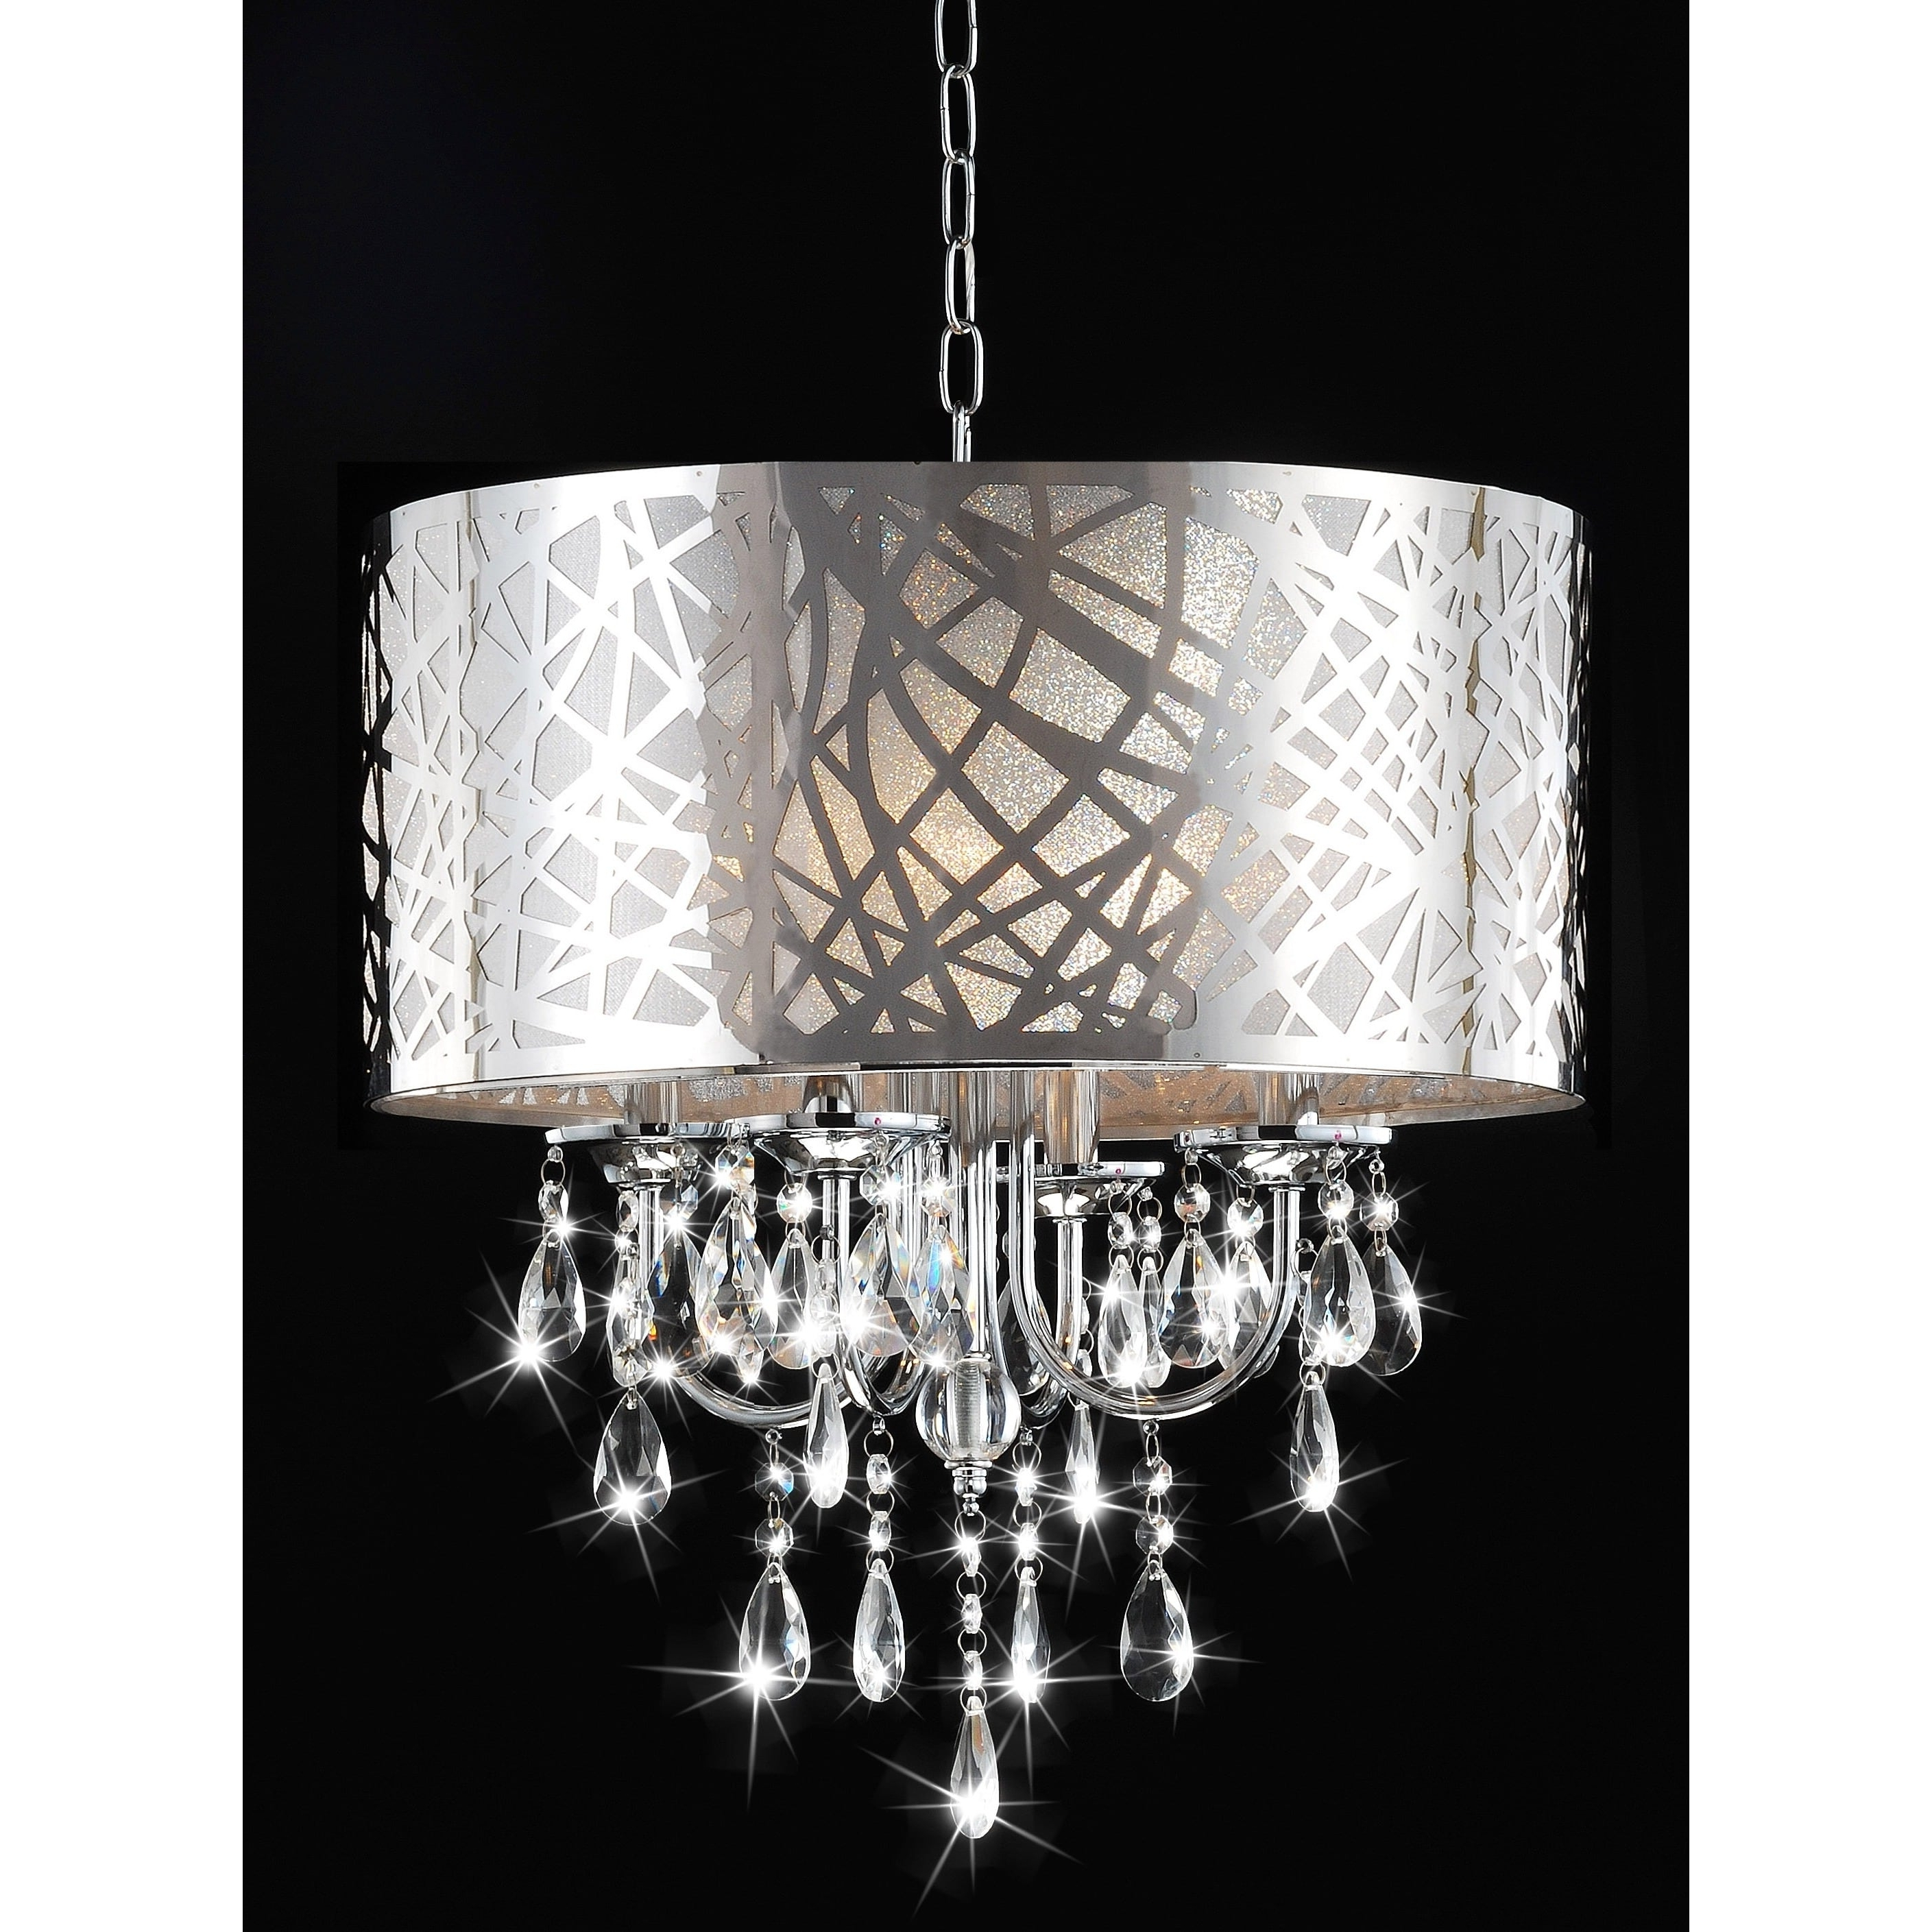 Widely Used 4 Light Chrome Crystal Chandeliers With 4 Light Chrome Crystal Chandelier – Free Shipping Today – Overstock (View 15 of 15)